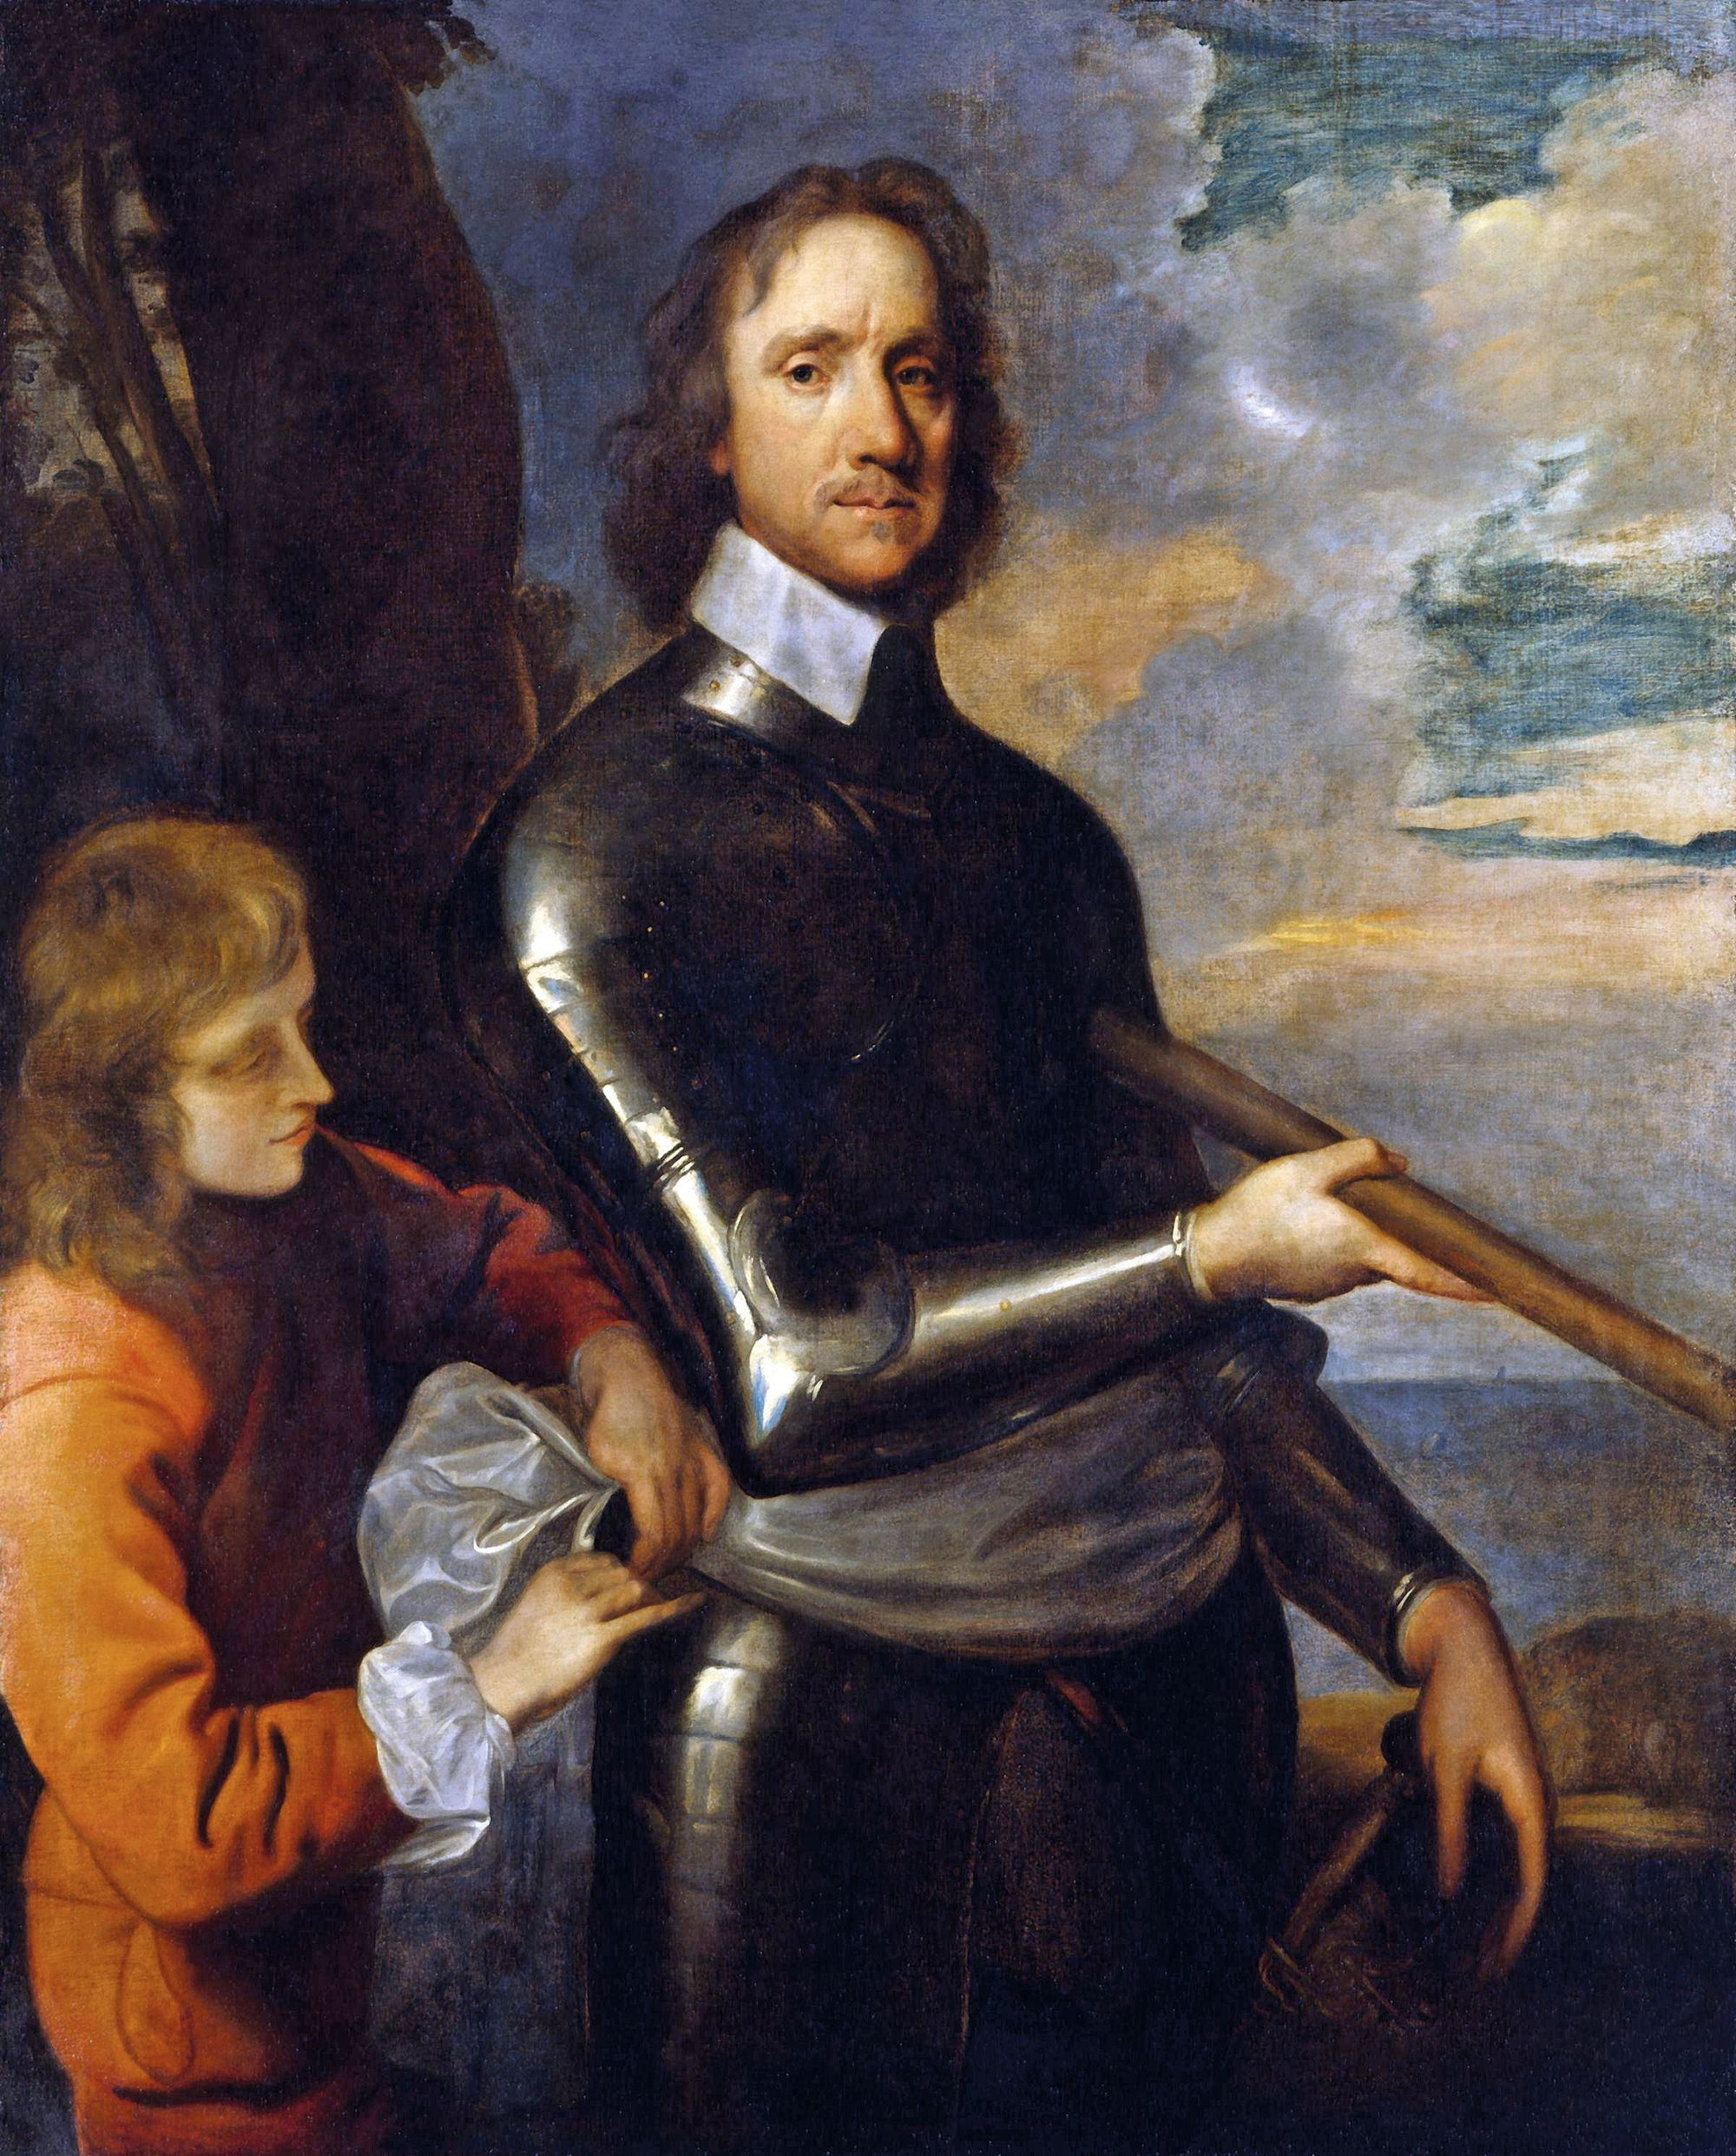 Robert Walker, Oliver Cromwell, v. 1649, huile sur toile, 128 x 103 cm, National Portrait Gallery, Londres